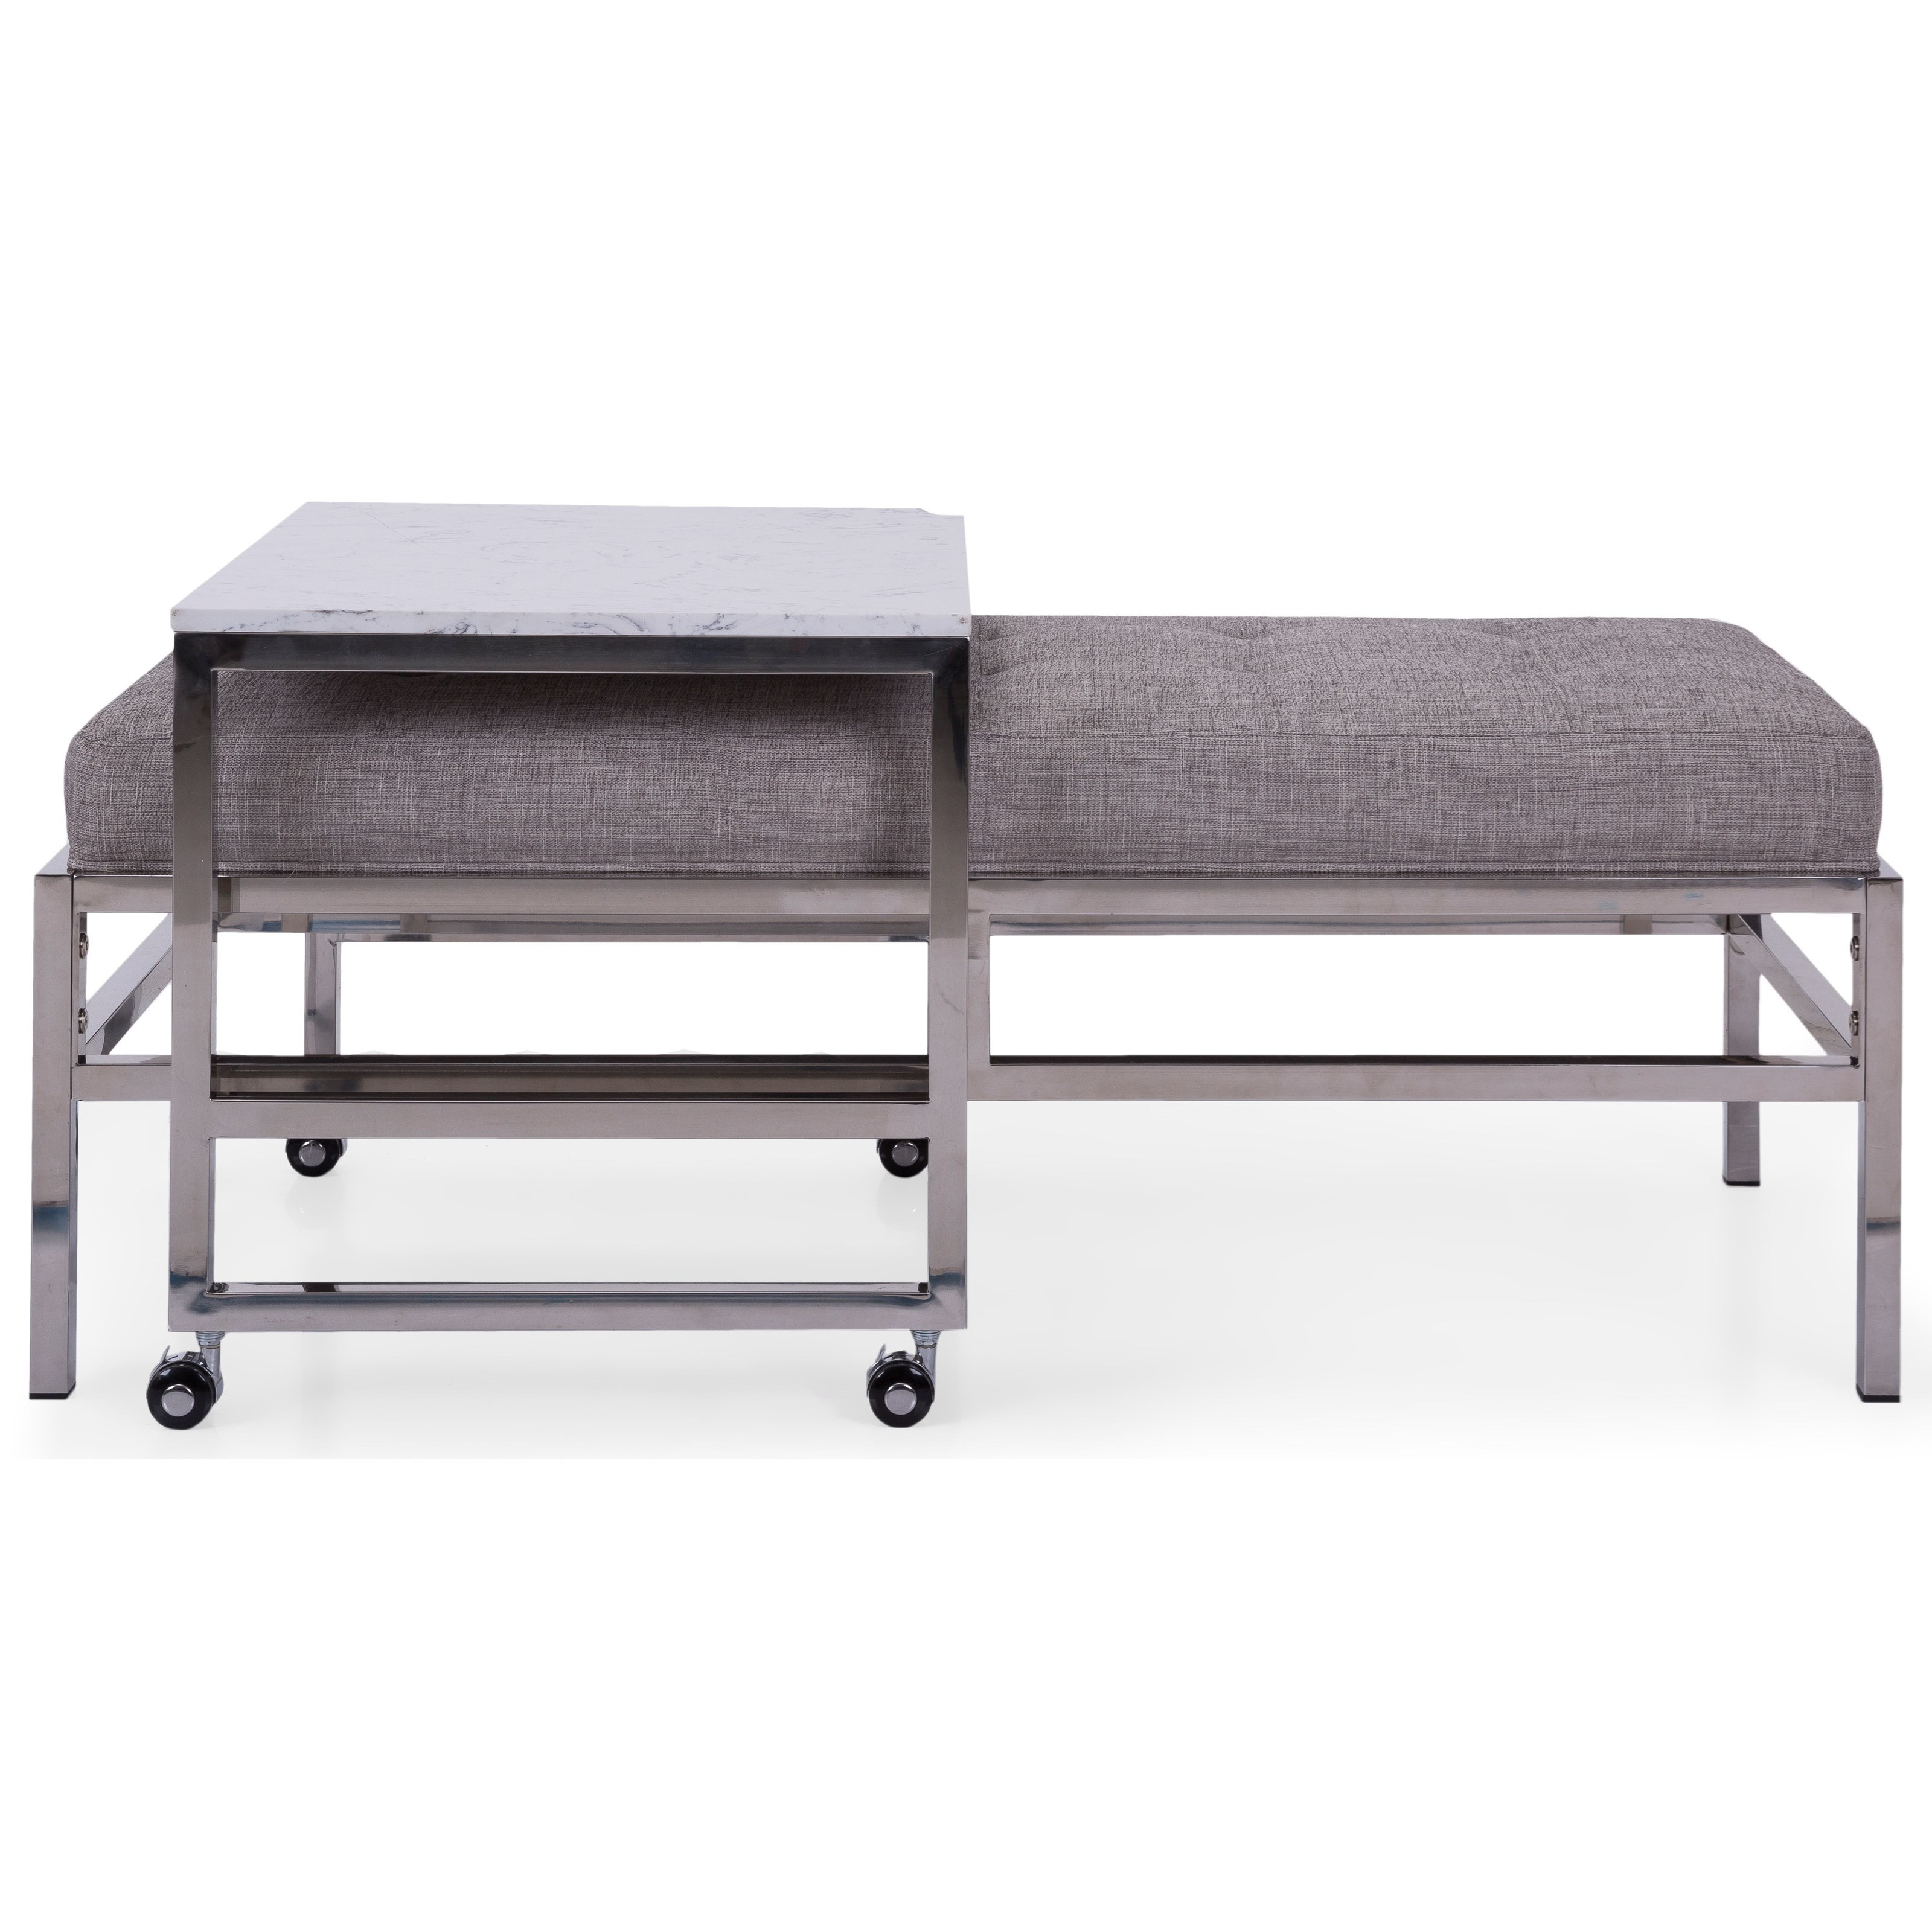 6842 Ottoman Bench by Decor-Rest at Johnny Janosik